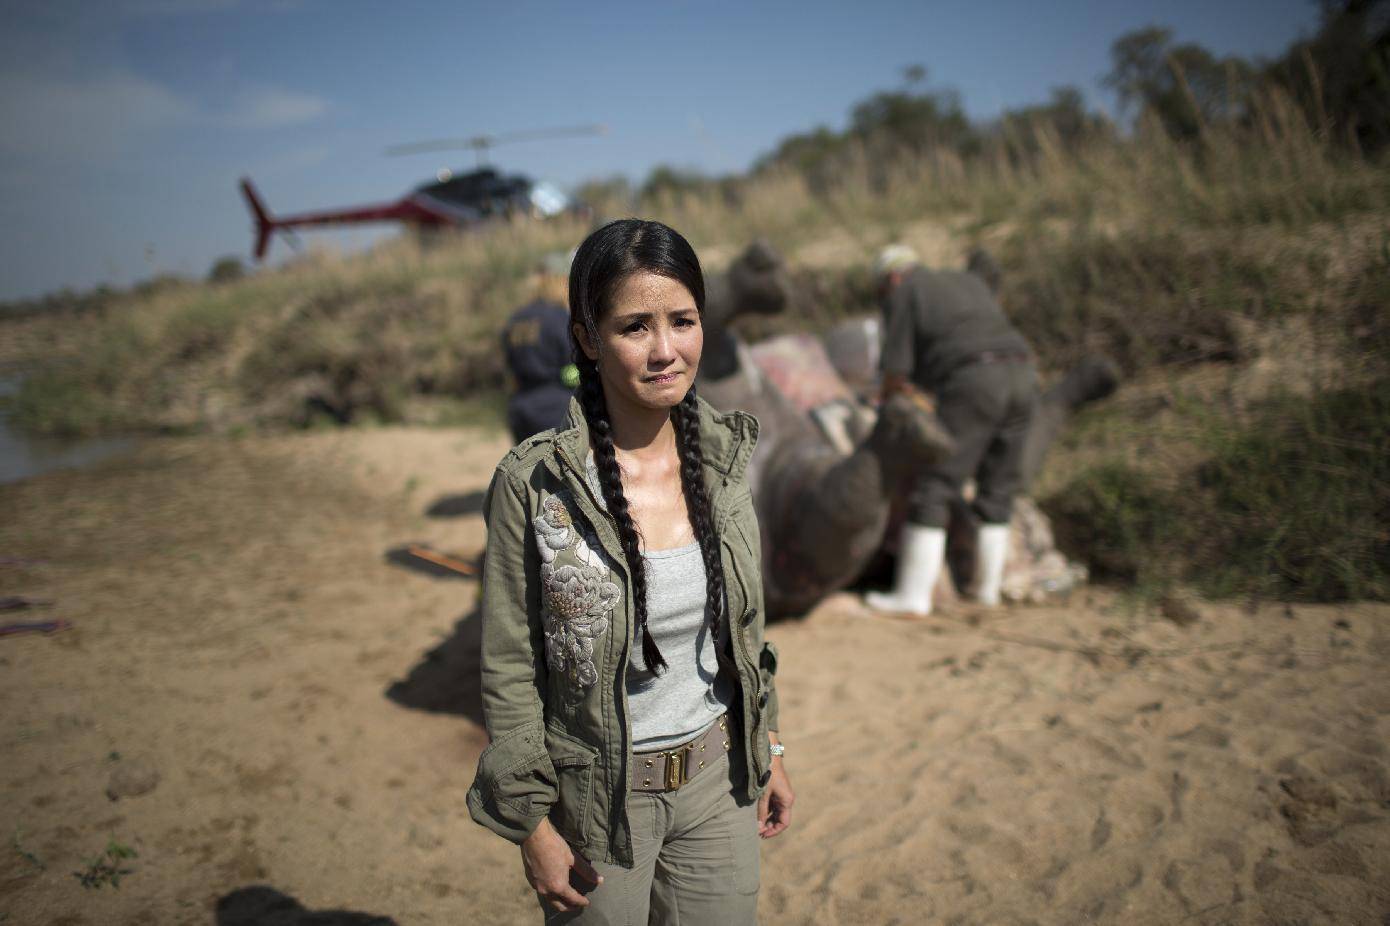 Vietnamese pop diva Hong Nhung, fights back tears as she stands near the carcass of a decomposing white rhino on the banks of a river in the Kruger National Park on September 12, 2014 (AFP Photo/Marco Longari)